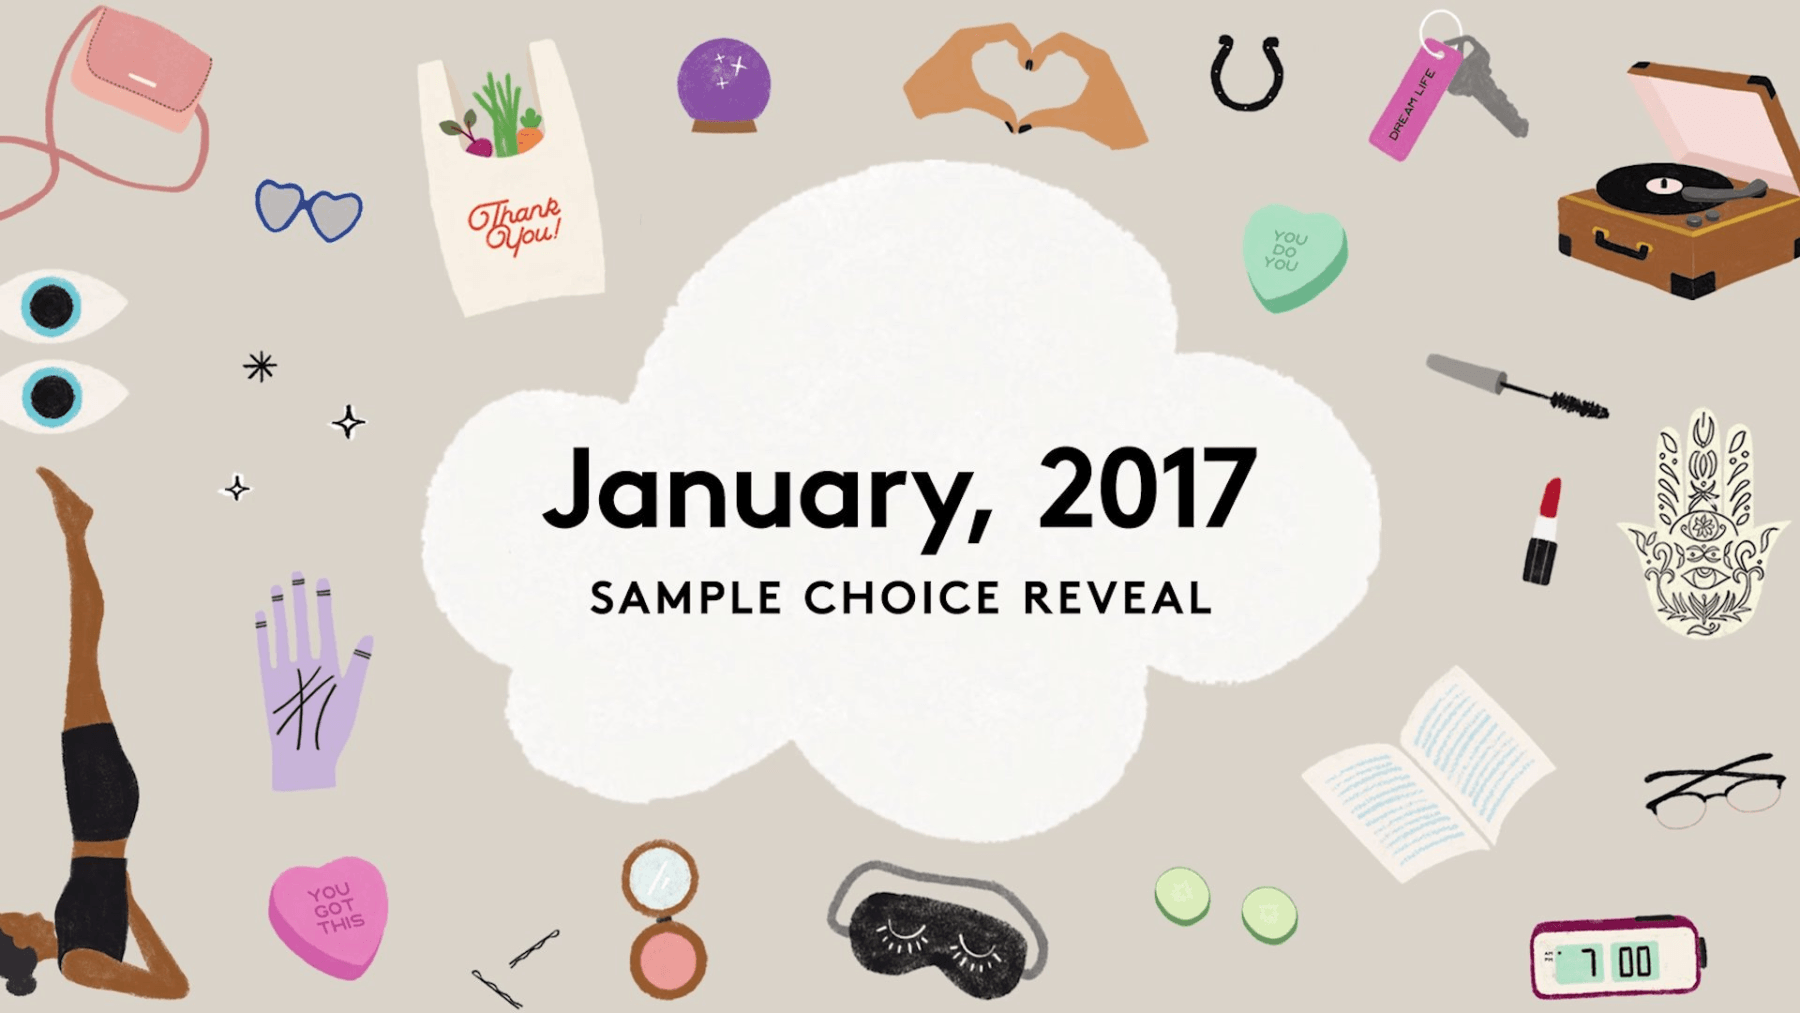 Birchbox January 2017 Spoilers & Coupon – Sample Choice and Curated Box